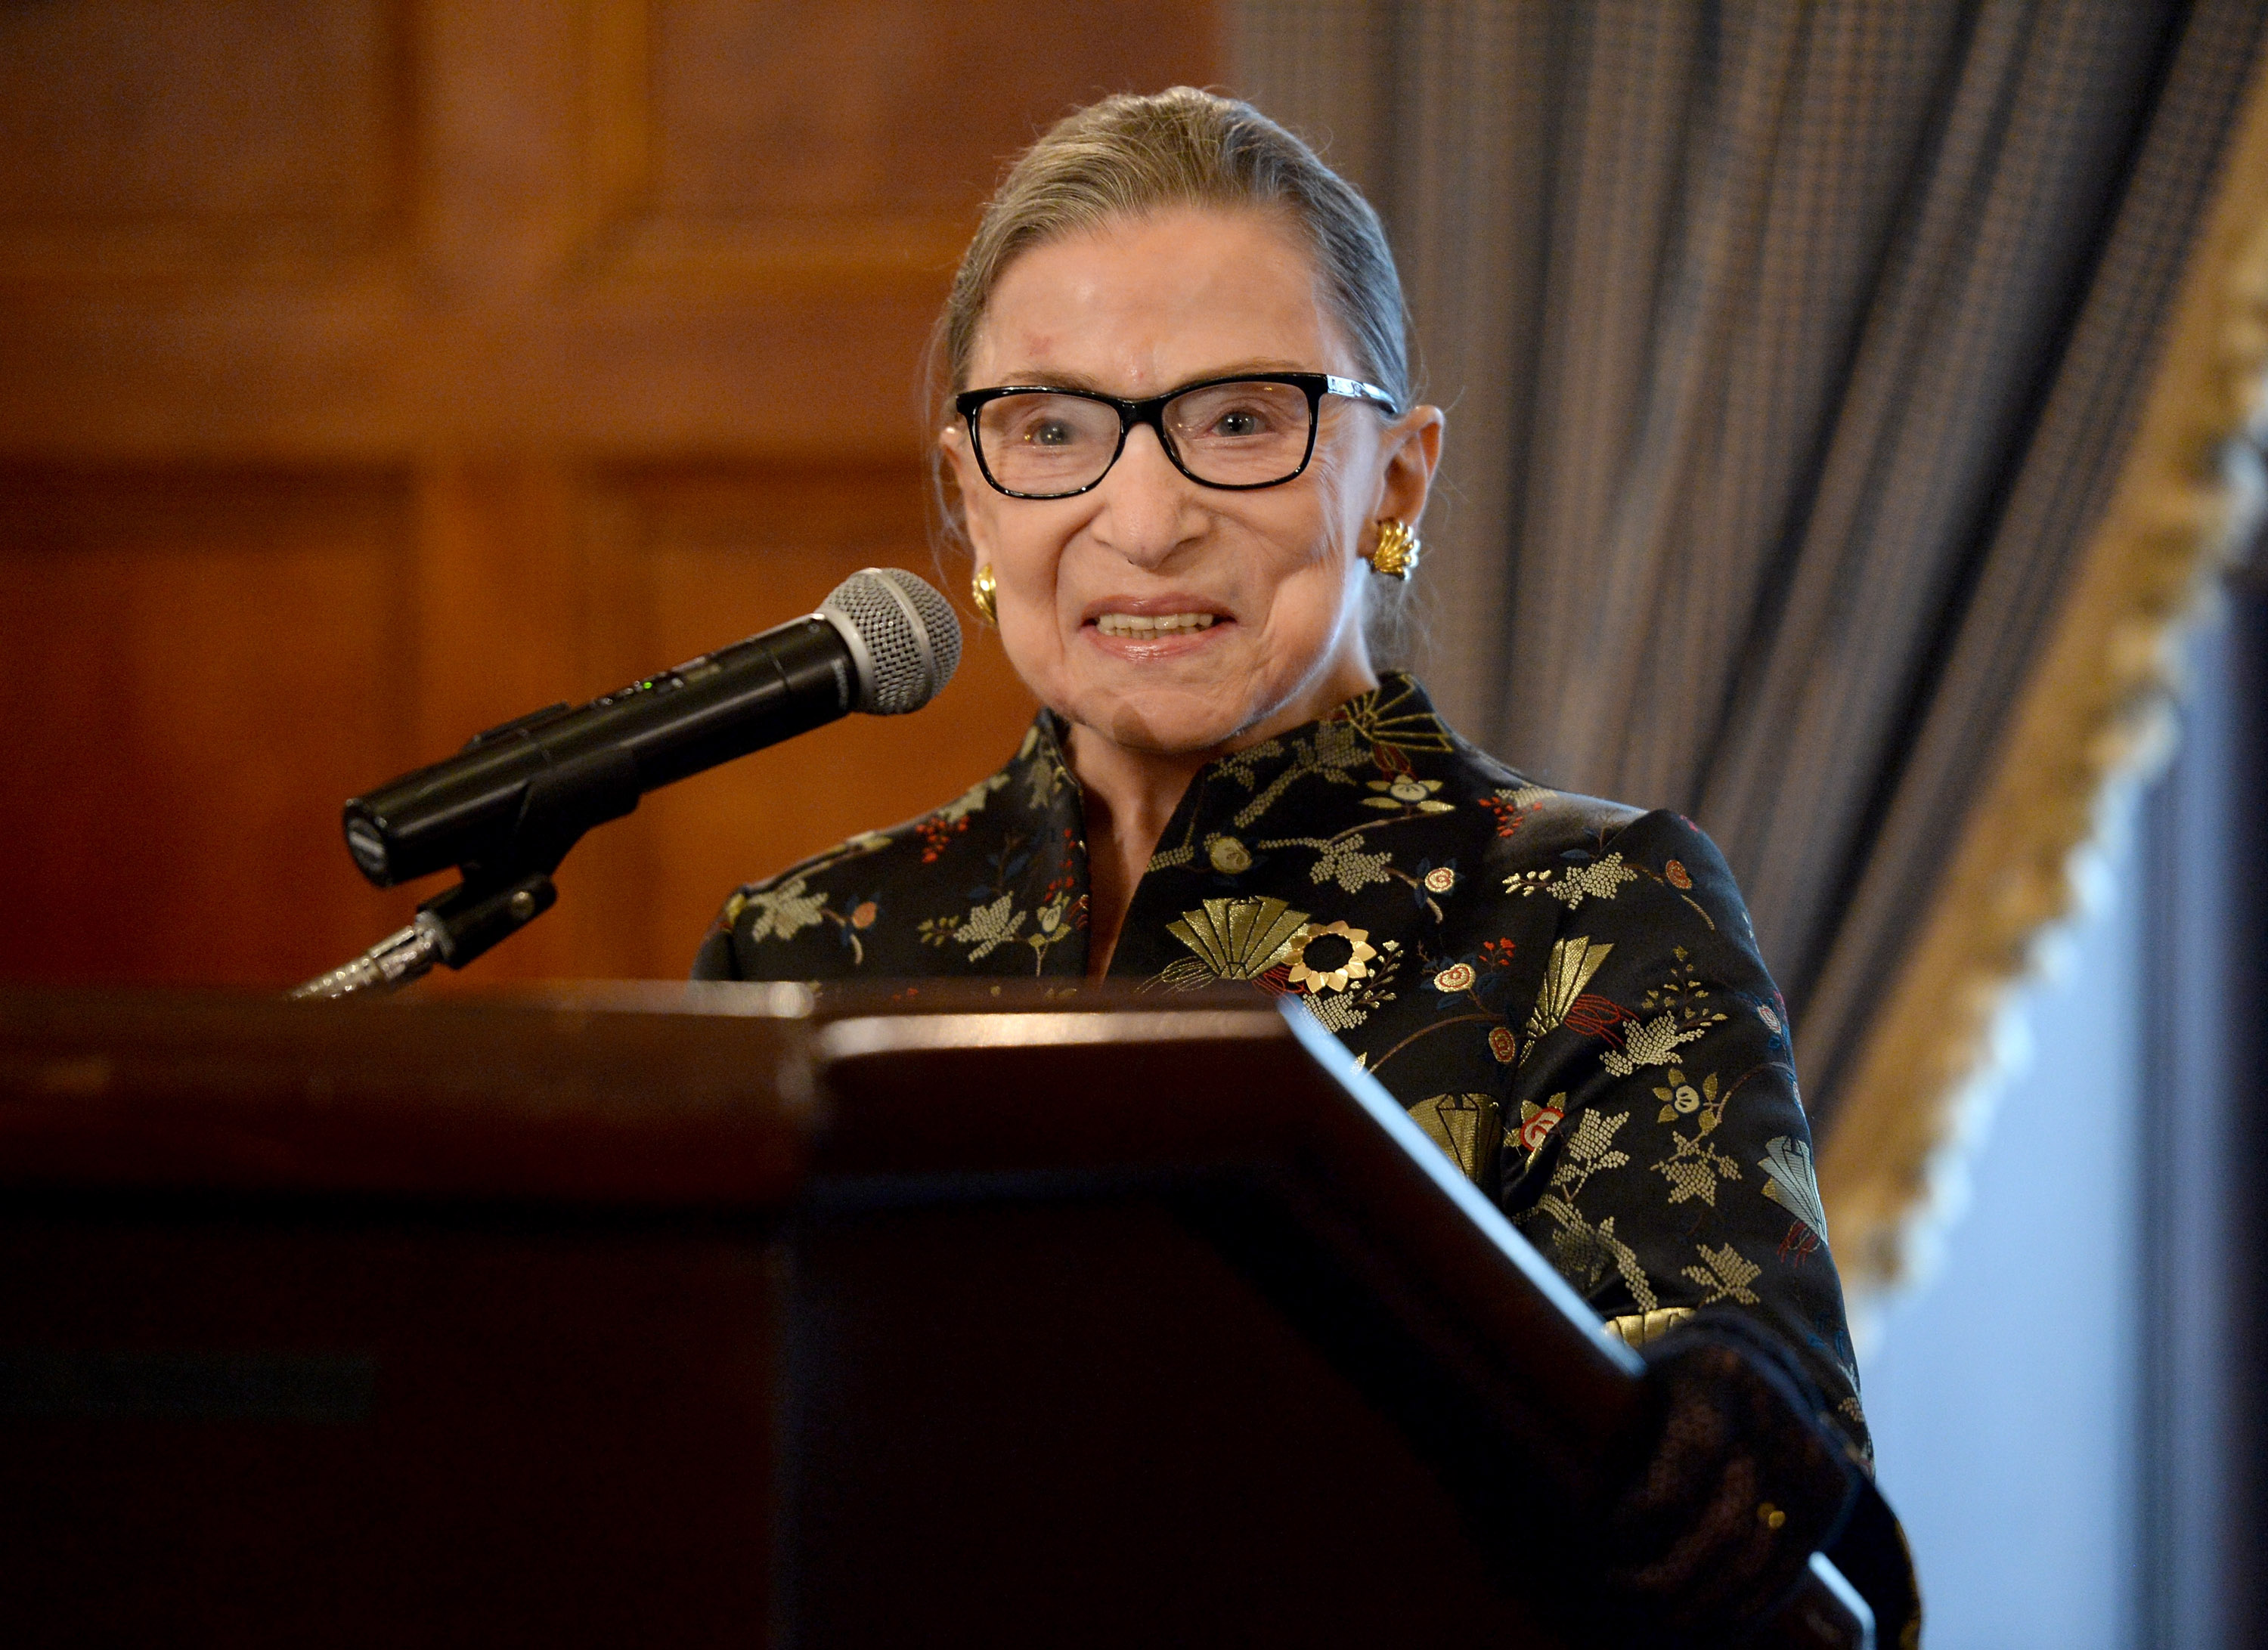 Supreme Court Justice Ruth Bader Ginsburg presents onstage at a reception before an event at the Temple Emanu-El Skirball Center on Sept. 21, 2016 in New York City.